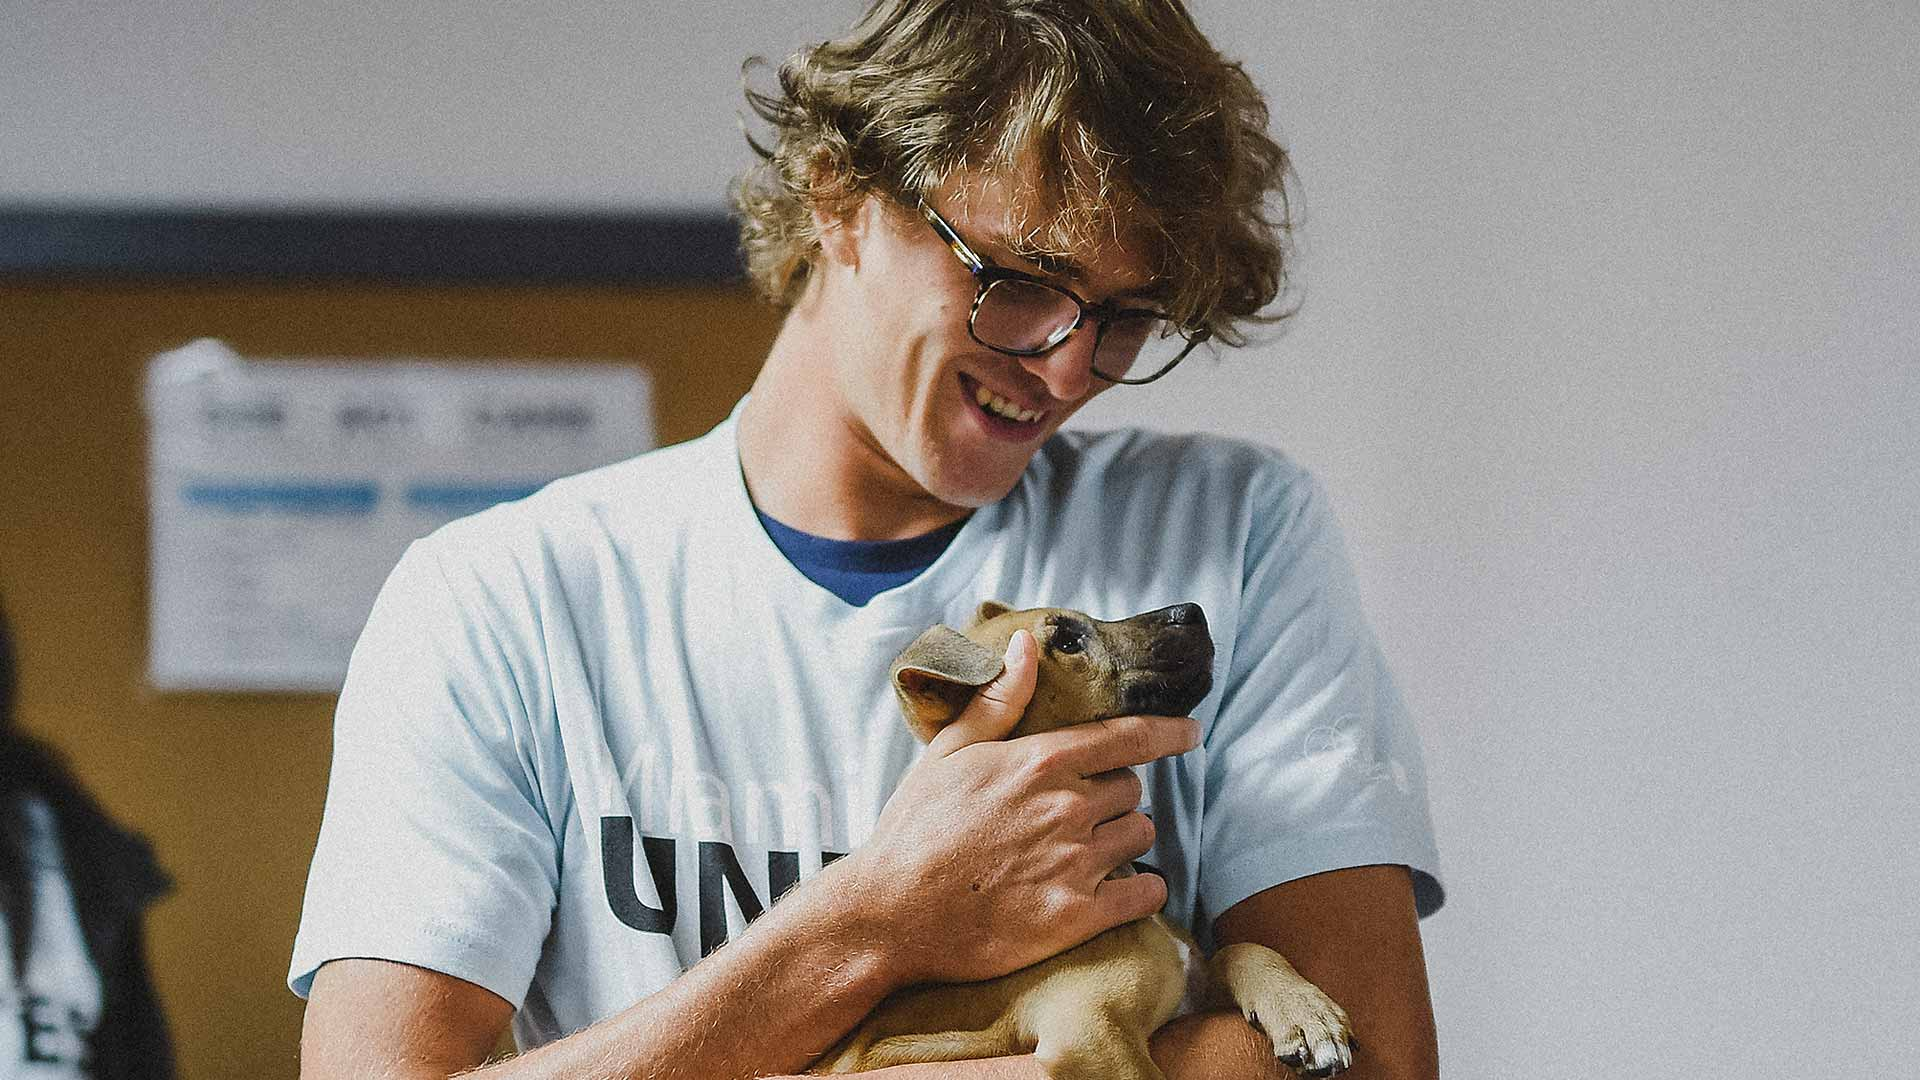 Ahead of the Miami Open presented by Itau, Alexander Zverev adopts a puppy from the Greater Humane Society of Miami.